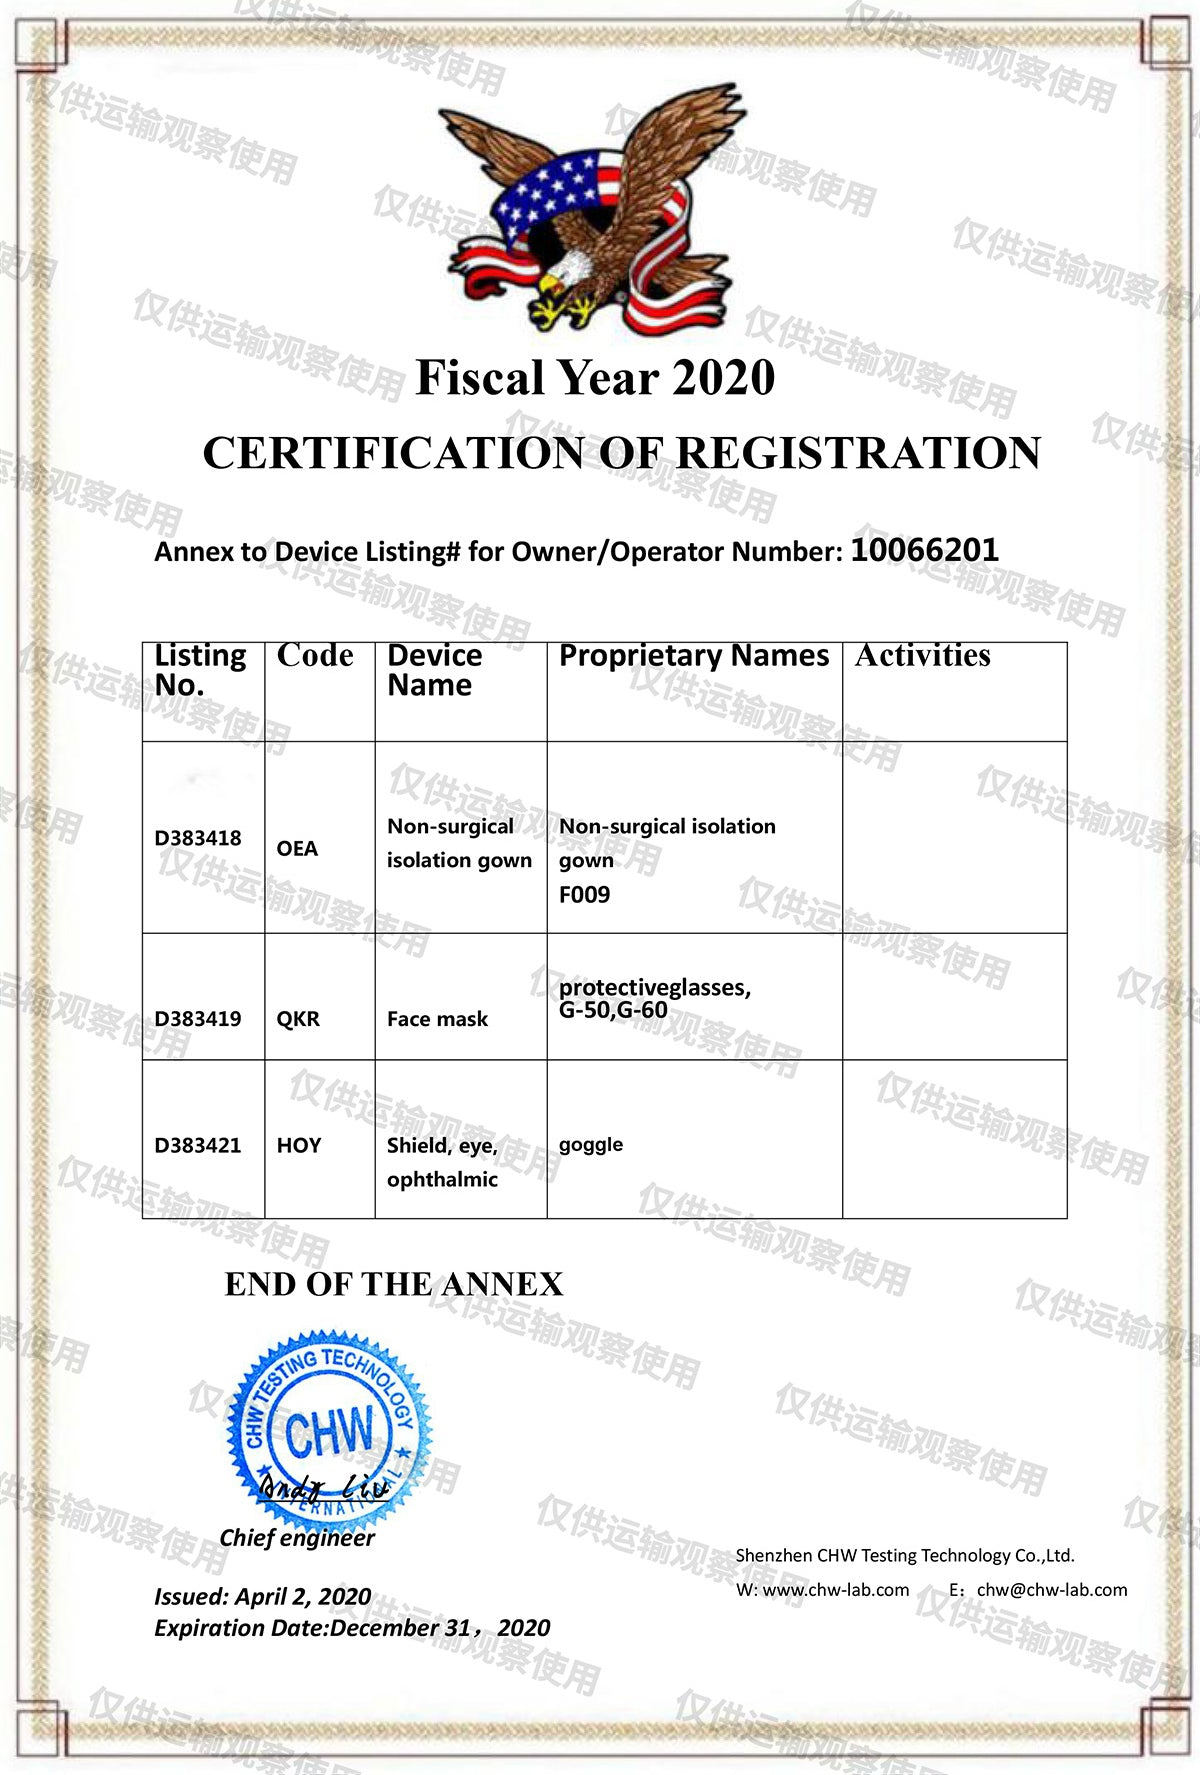 FDA Registration Certificate Fiscal Year 2020